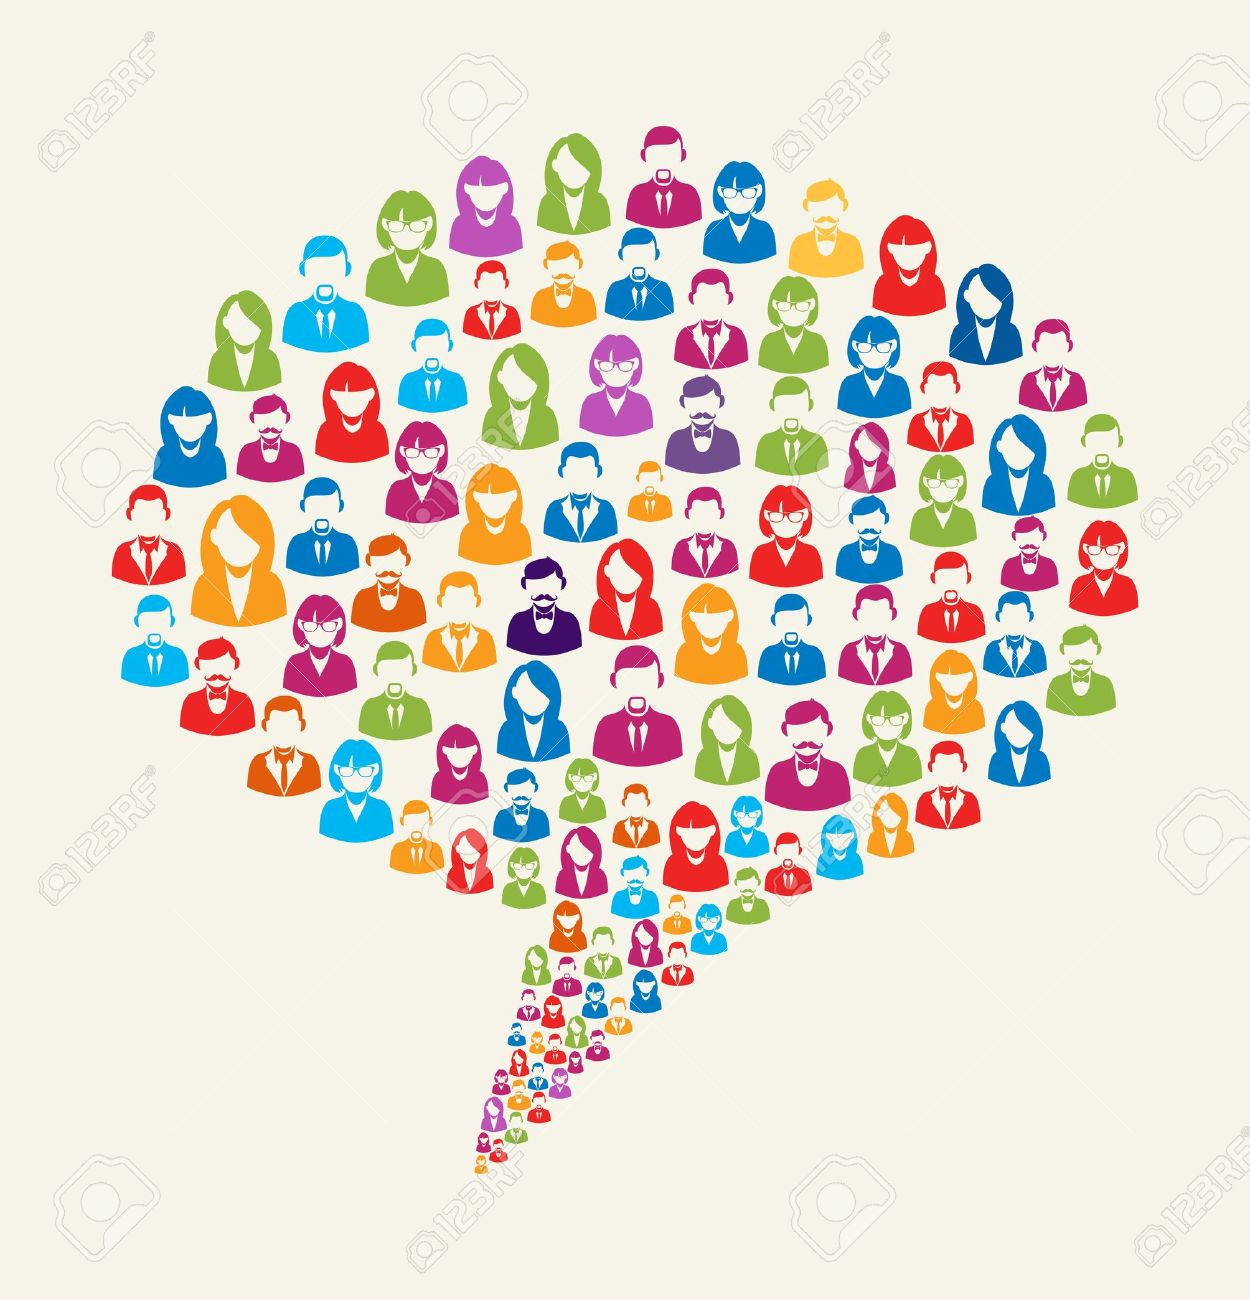 Social media clipart png no background graphic stock Colorful Social Media User Icons Texture In Talk Bubble Shape ... graphic stock